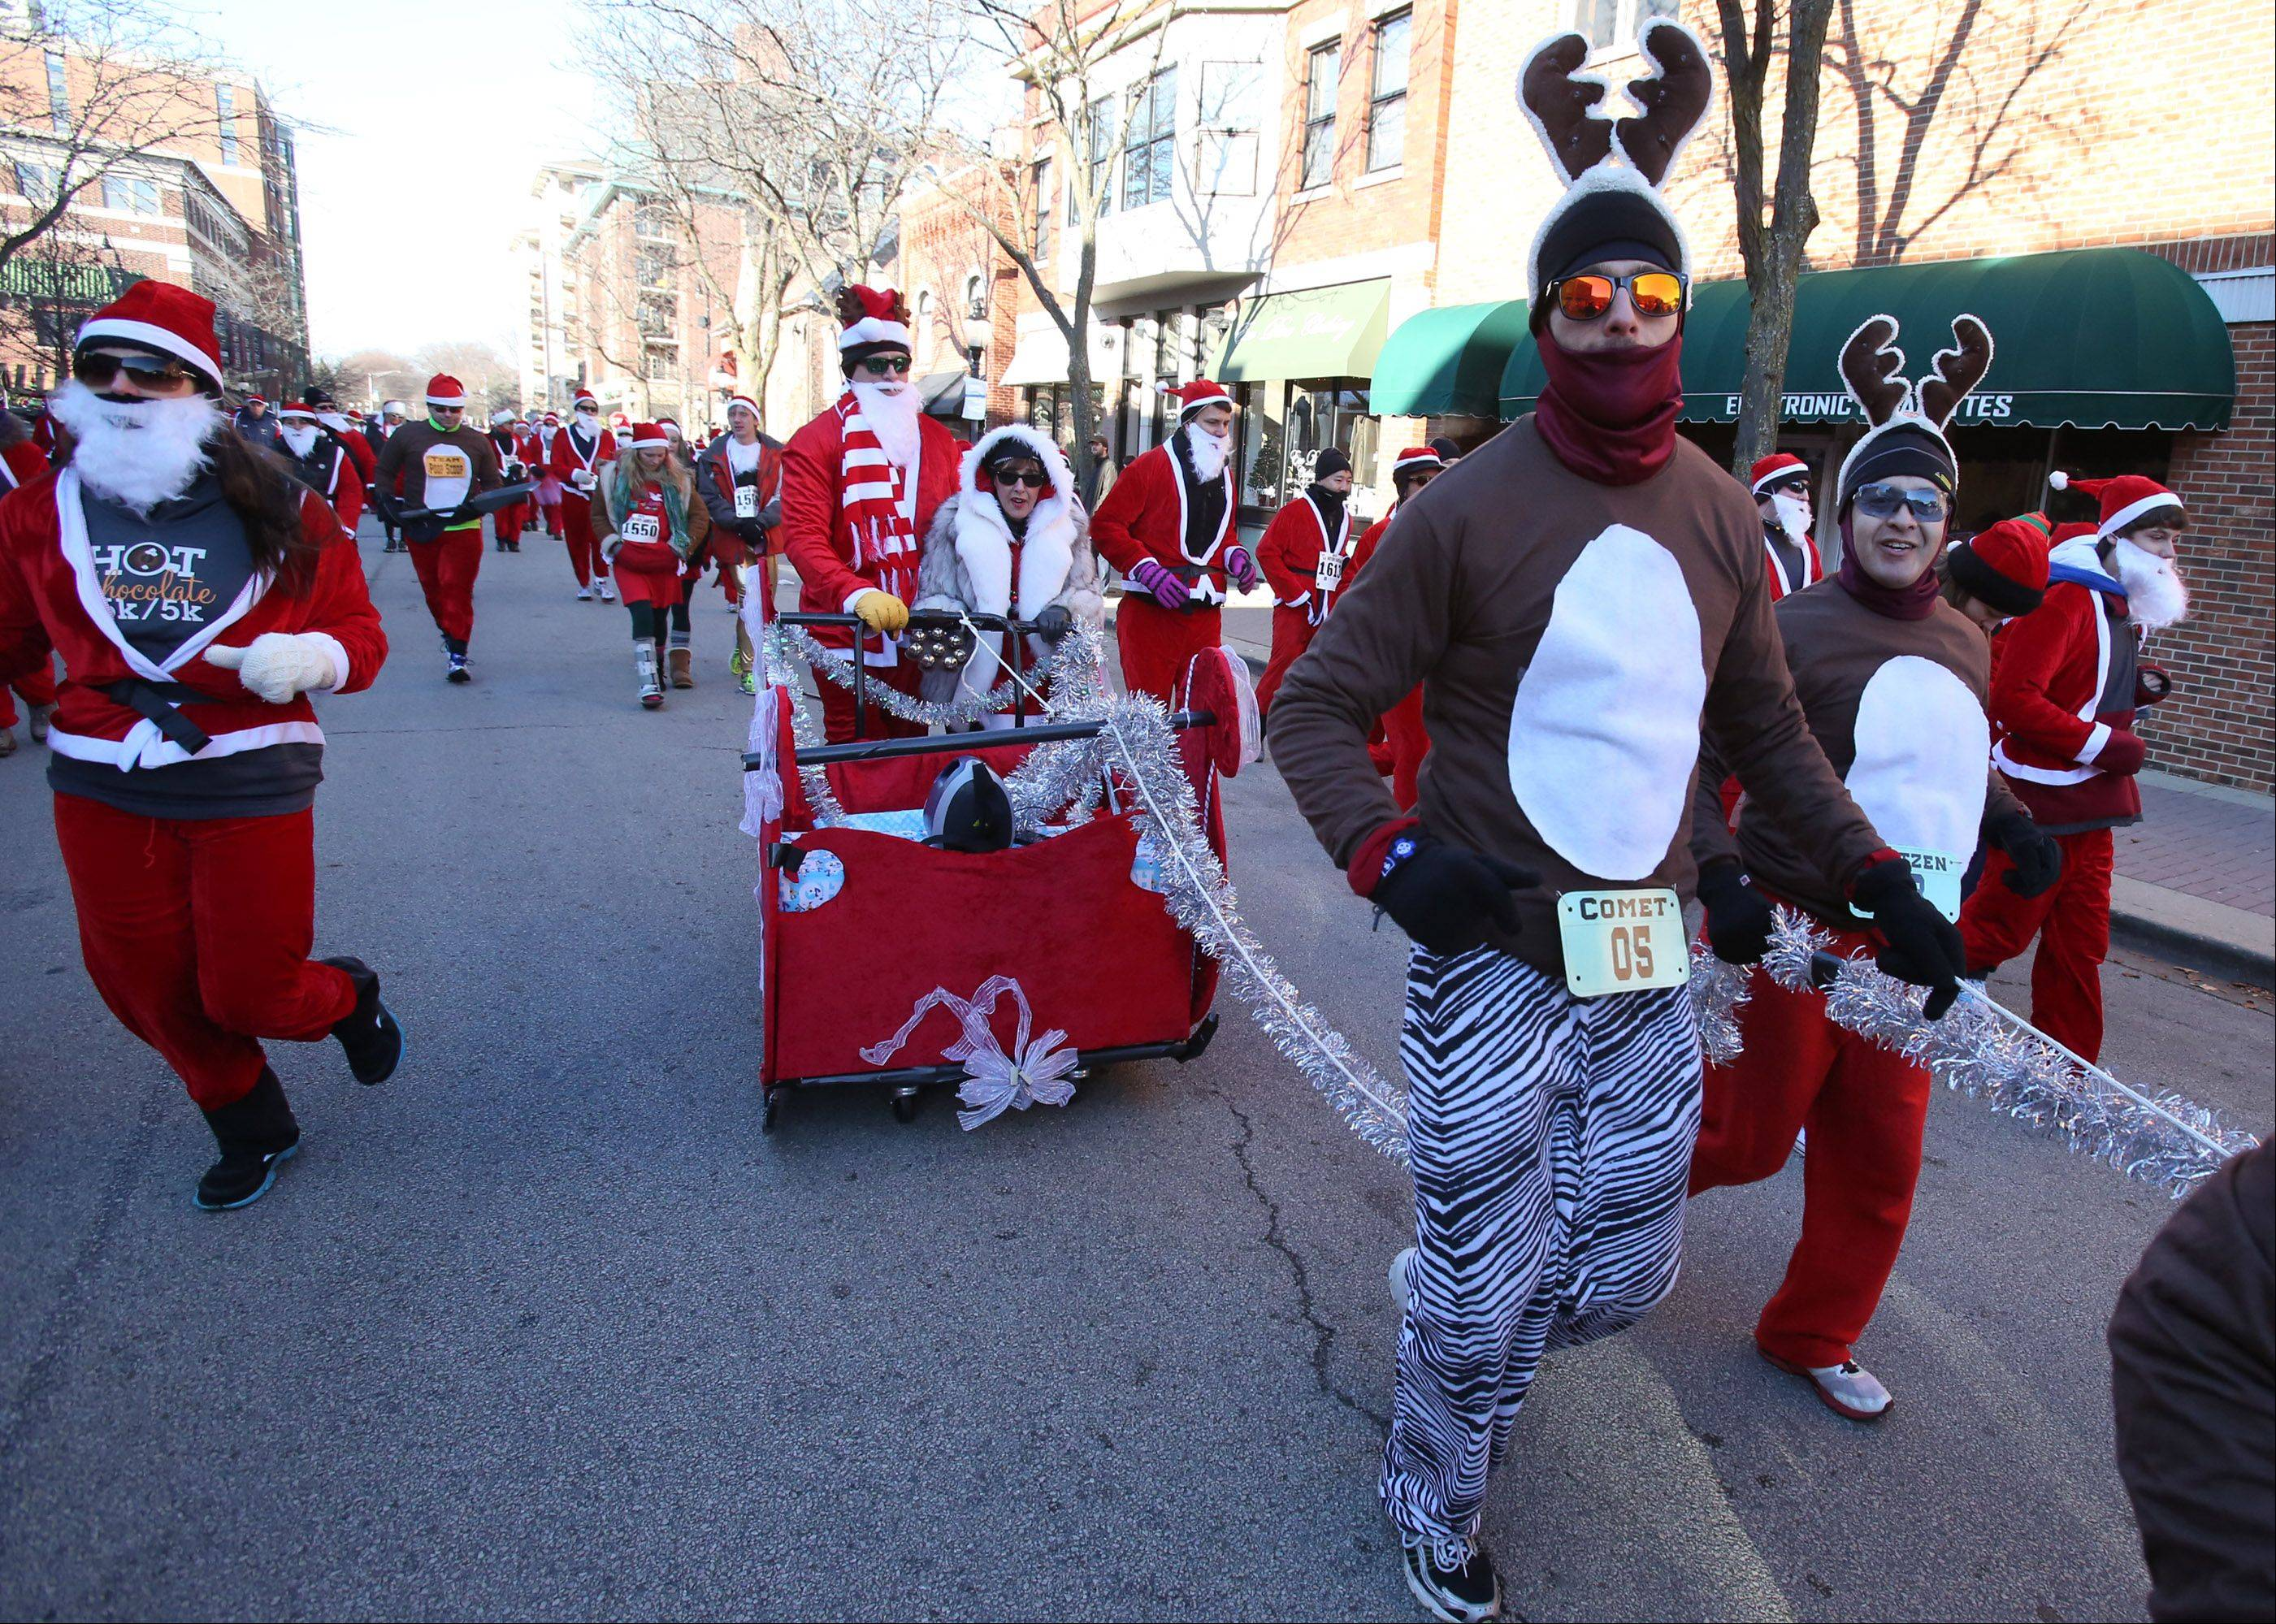 Runners dressed as reindeer pull a sled at the start of the Rotary Santa Run on Saturday in Arlington Heights.